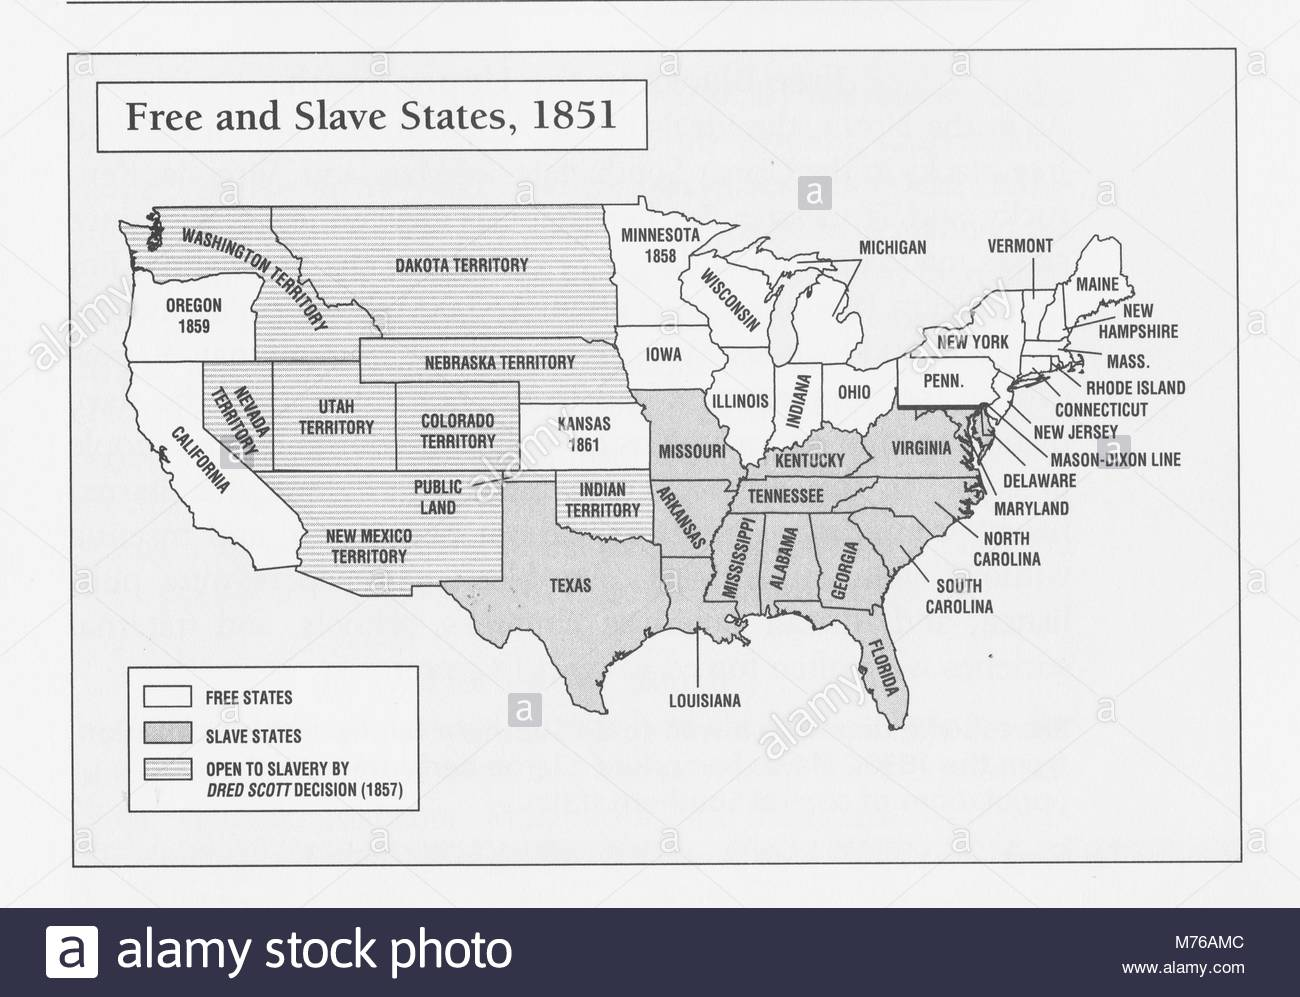 A map of free and slave states in the United States in 1851. By the ...